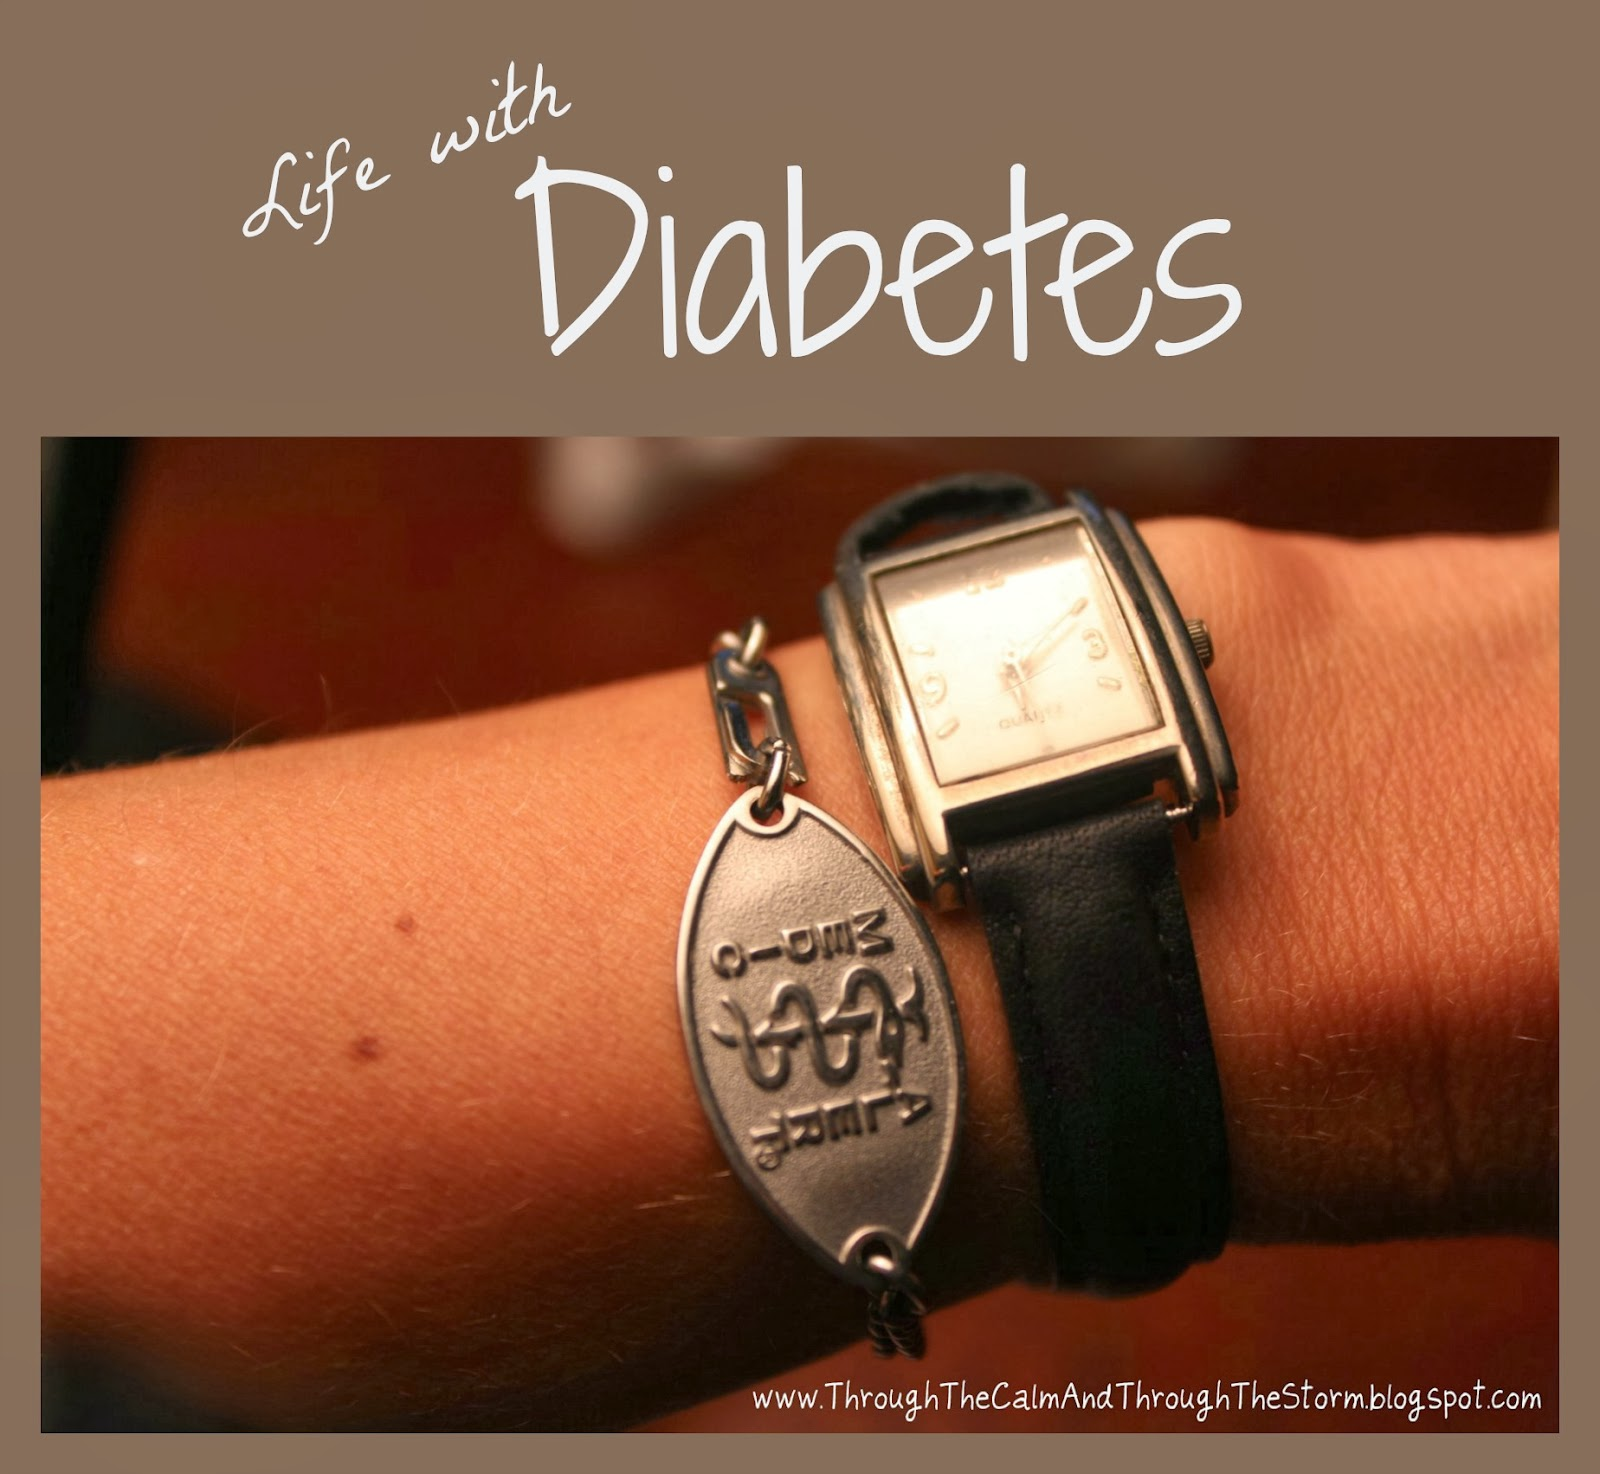 adult onset diabetes essay Essay on adult onset diabetes: does the get out of are in existence our system is our key overcome system physical health is actually the biggest thing in life.